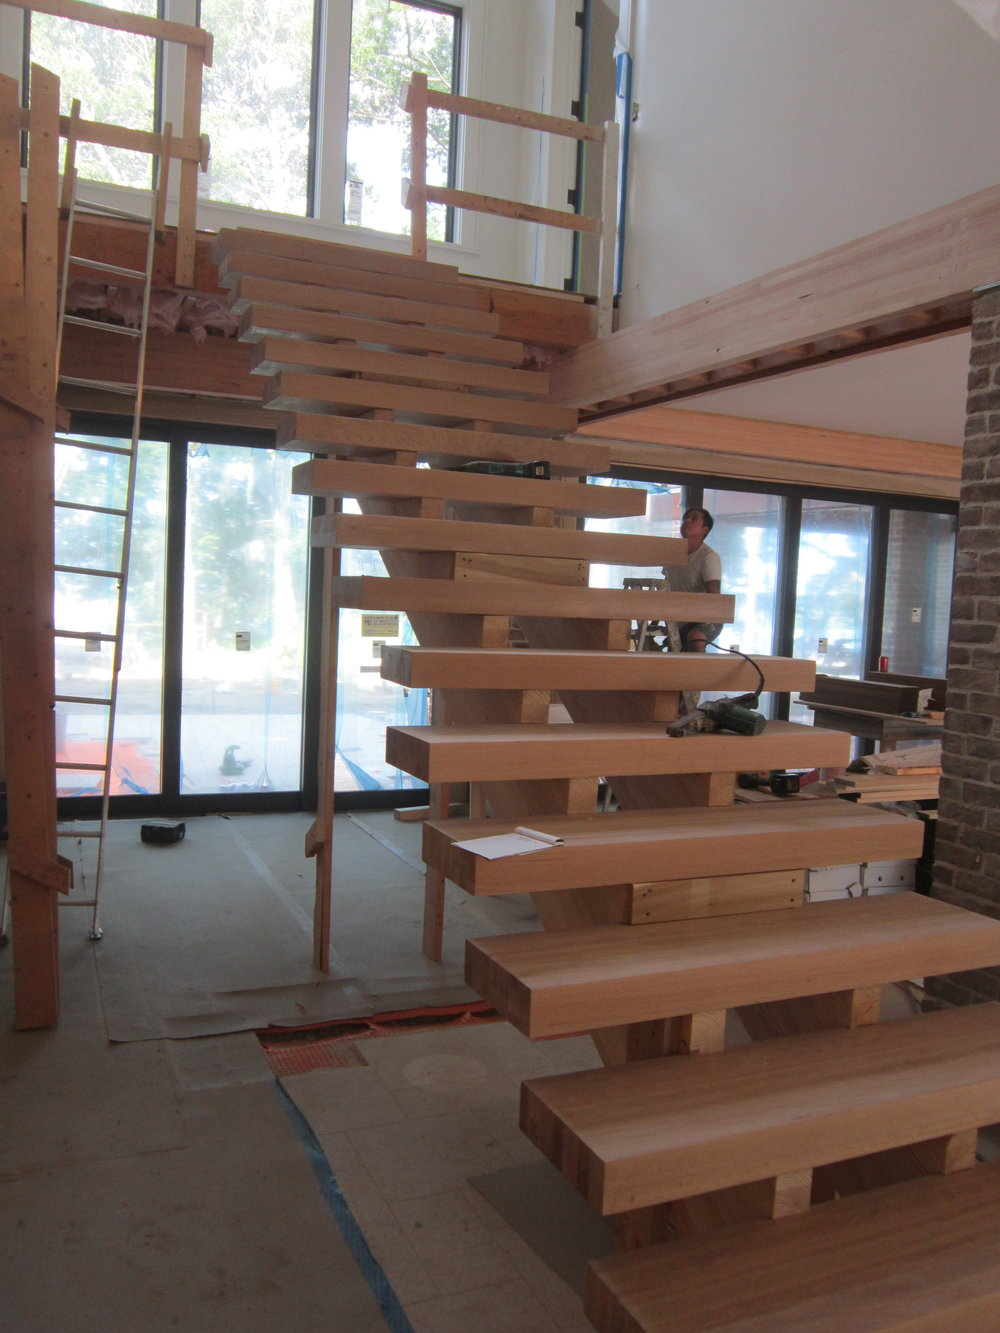 We are looking forward to seeing the stairs finished